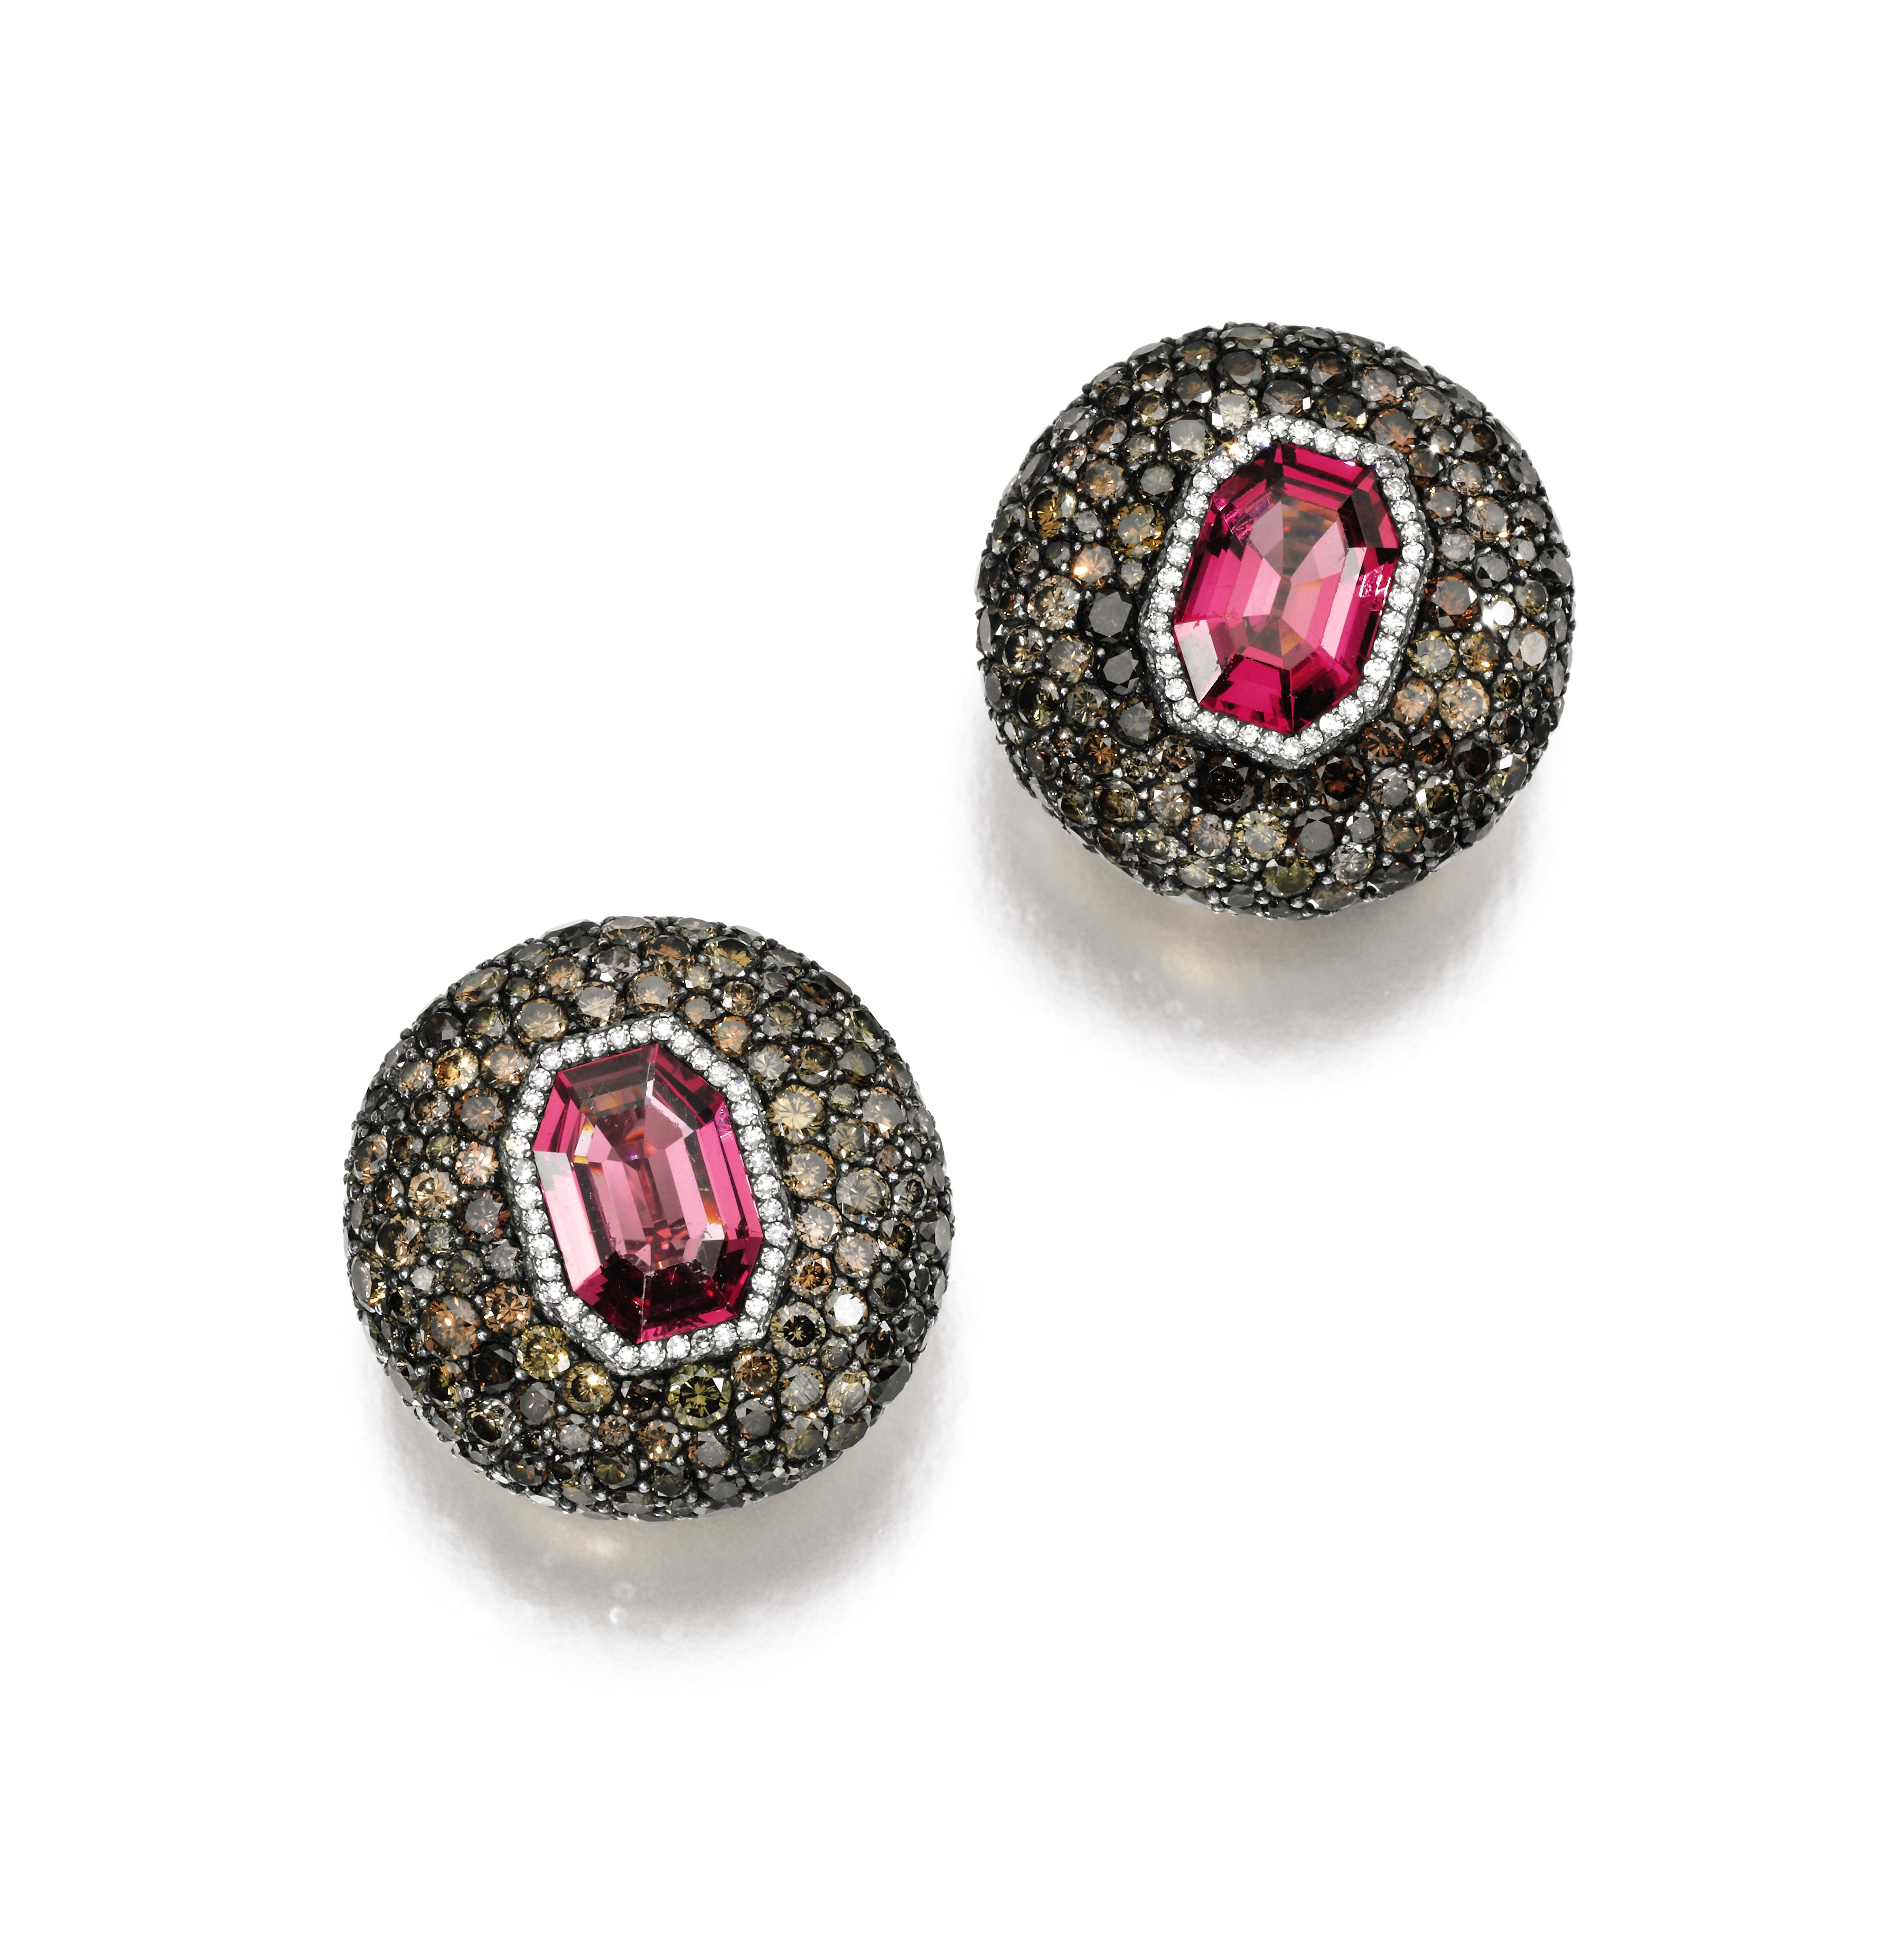 Pair of spinel and diamond earclips, JAR. Adorned with brilliant-cut diamonds of brown tint each clip featuring at its centre a stunning octagonal spinel. Estimate $150,000-250,000.